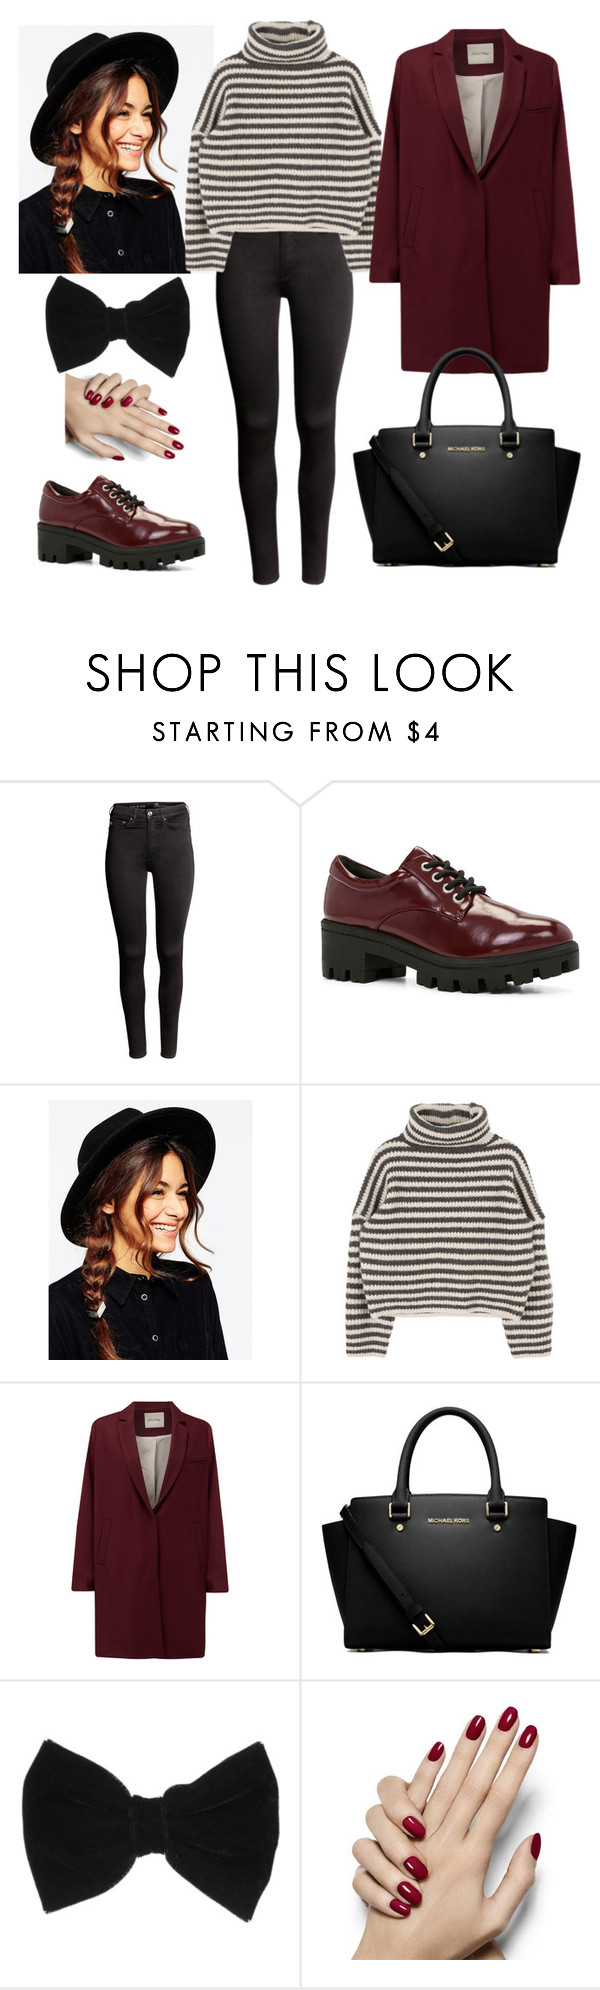 """#155"" by xlaurajuliax ❤ liked on Polyvore featuring H&M, ALDO, ASOS, American Vintage, MICHAEL Michael Kors and claire's"